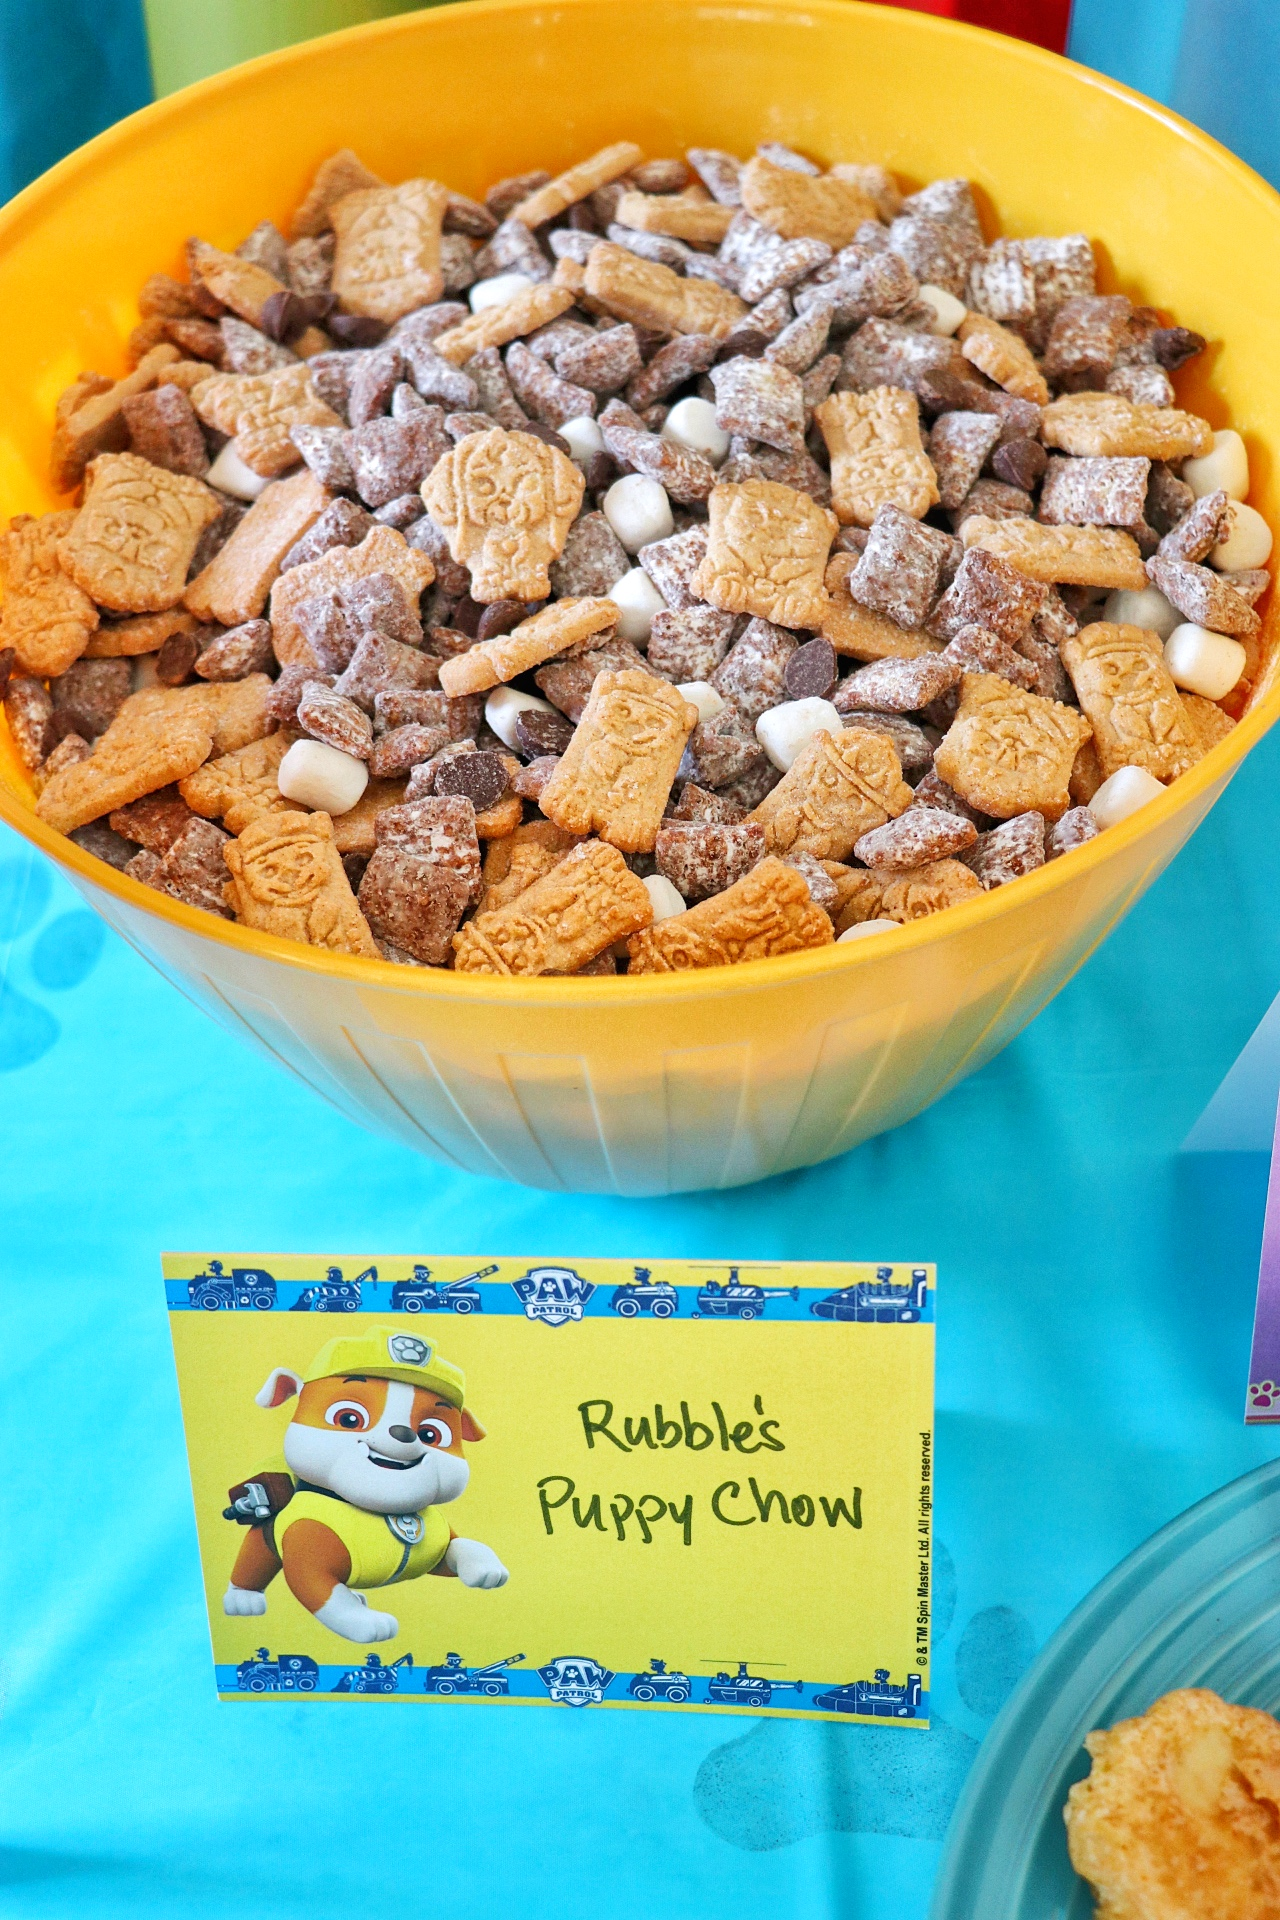 PAW Patrol themed food for a PAW Patrol birthday party: Rubble's Puppy Chow